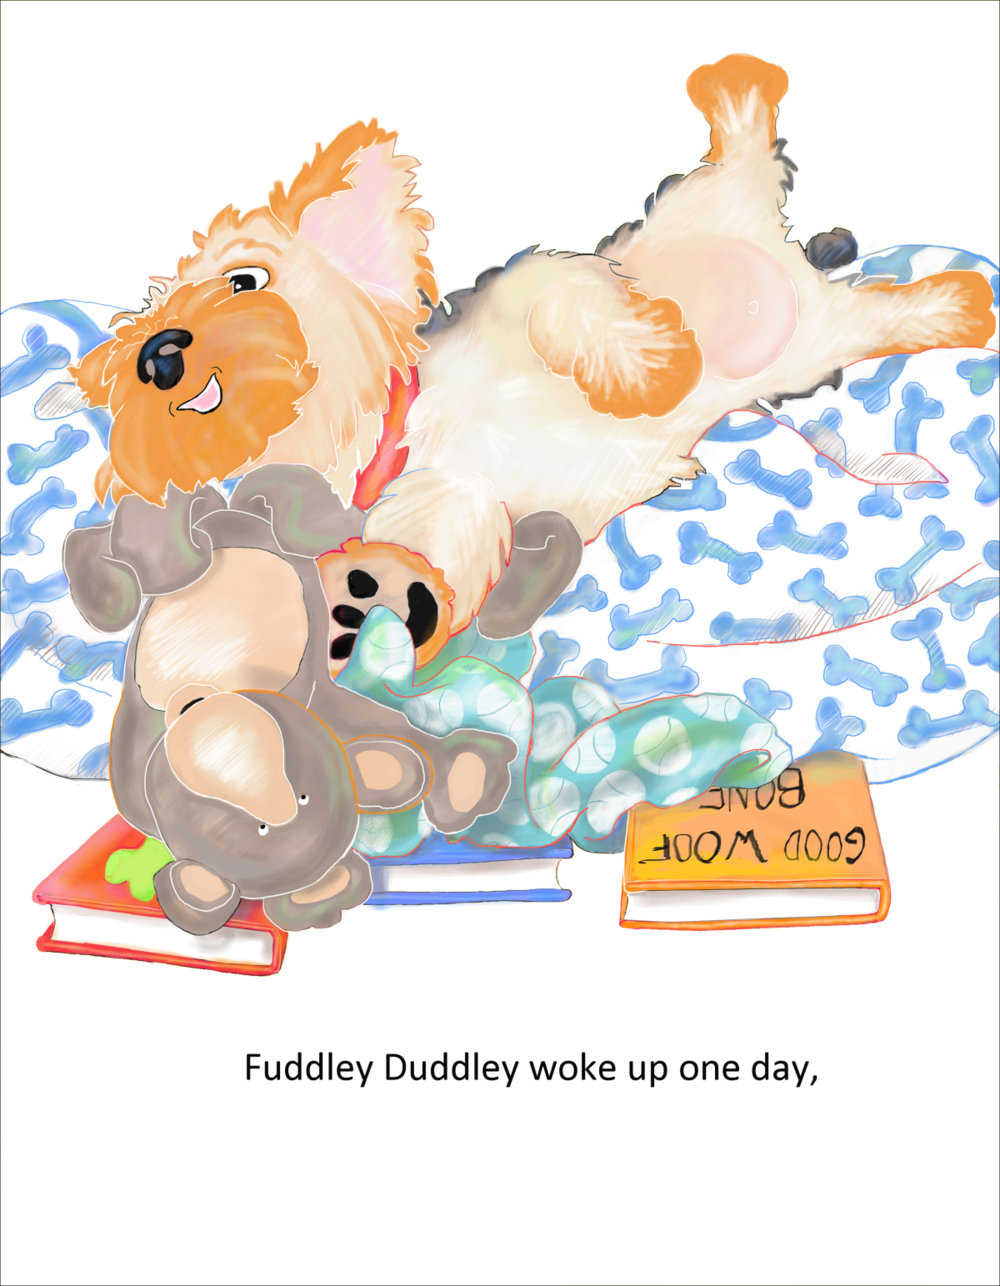 Elizabeth Martin Fuddley Duddley Pg 1 Waking Up